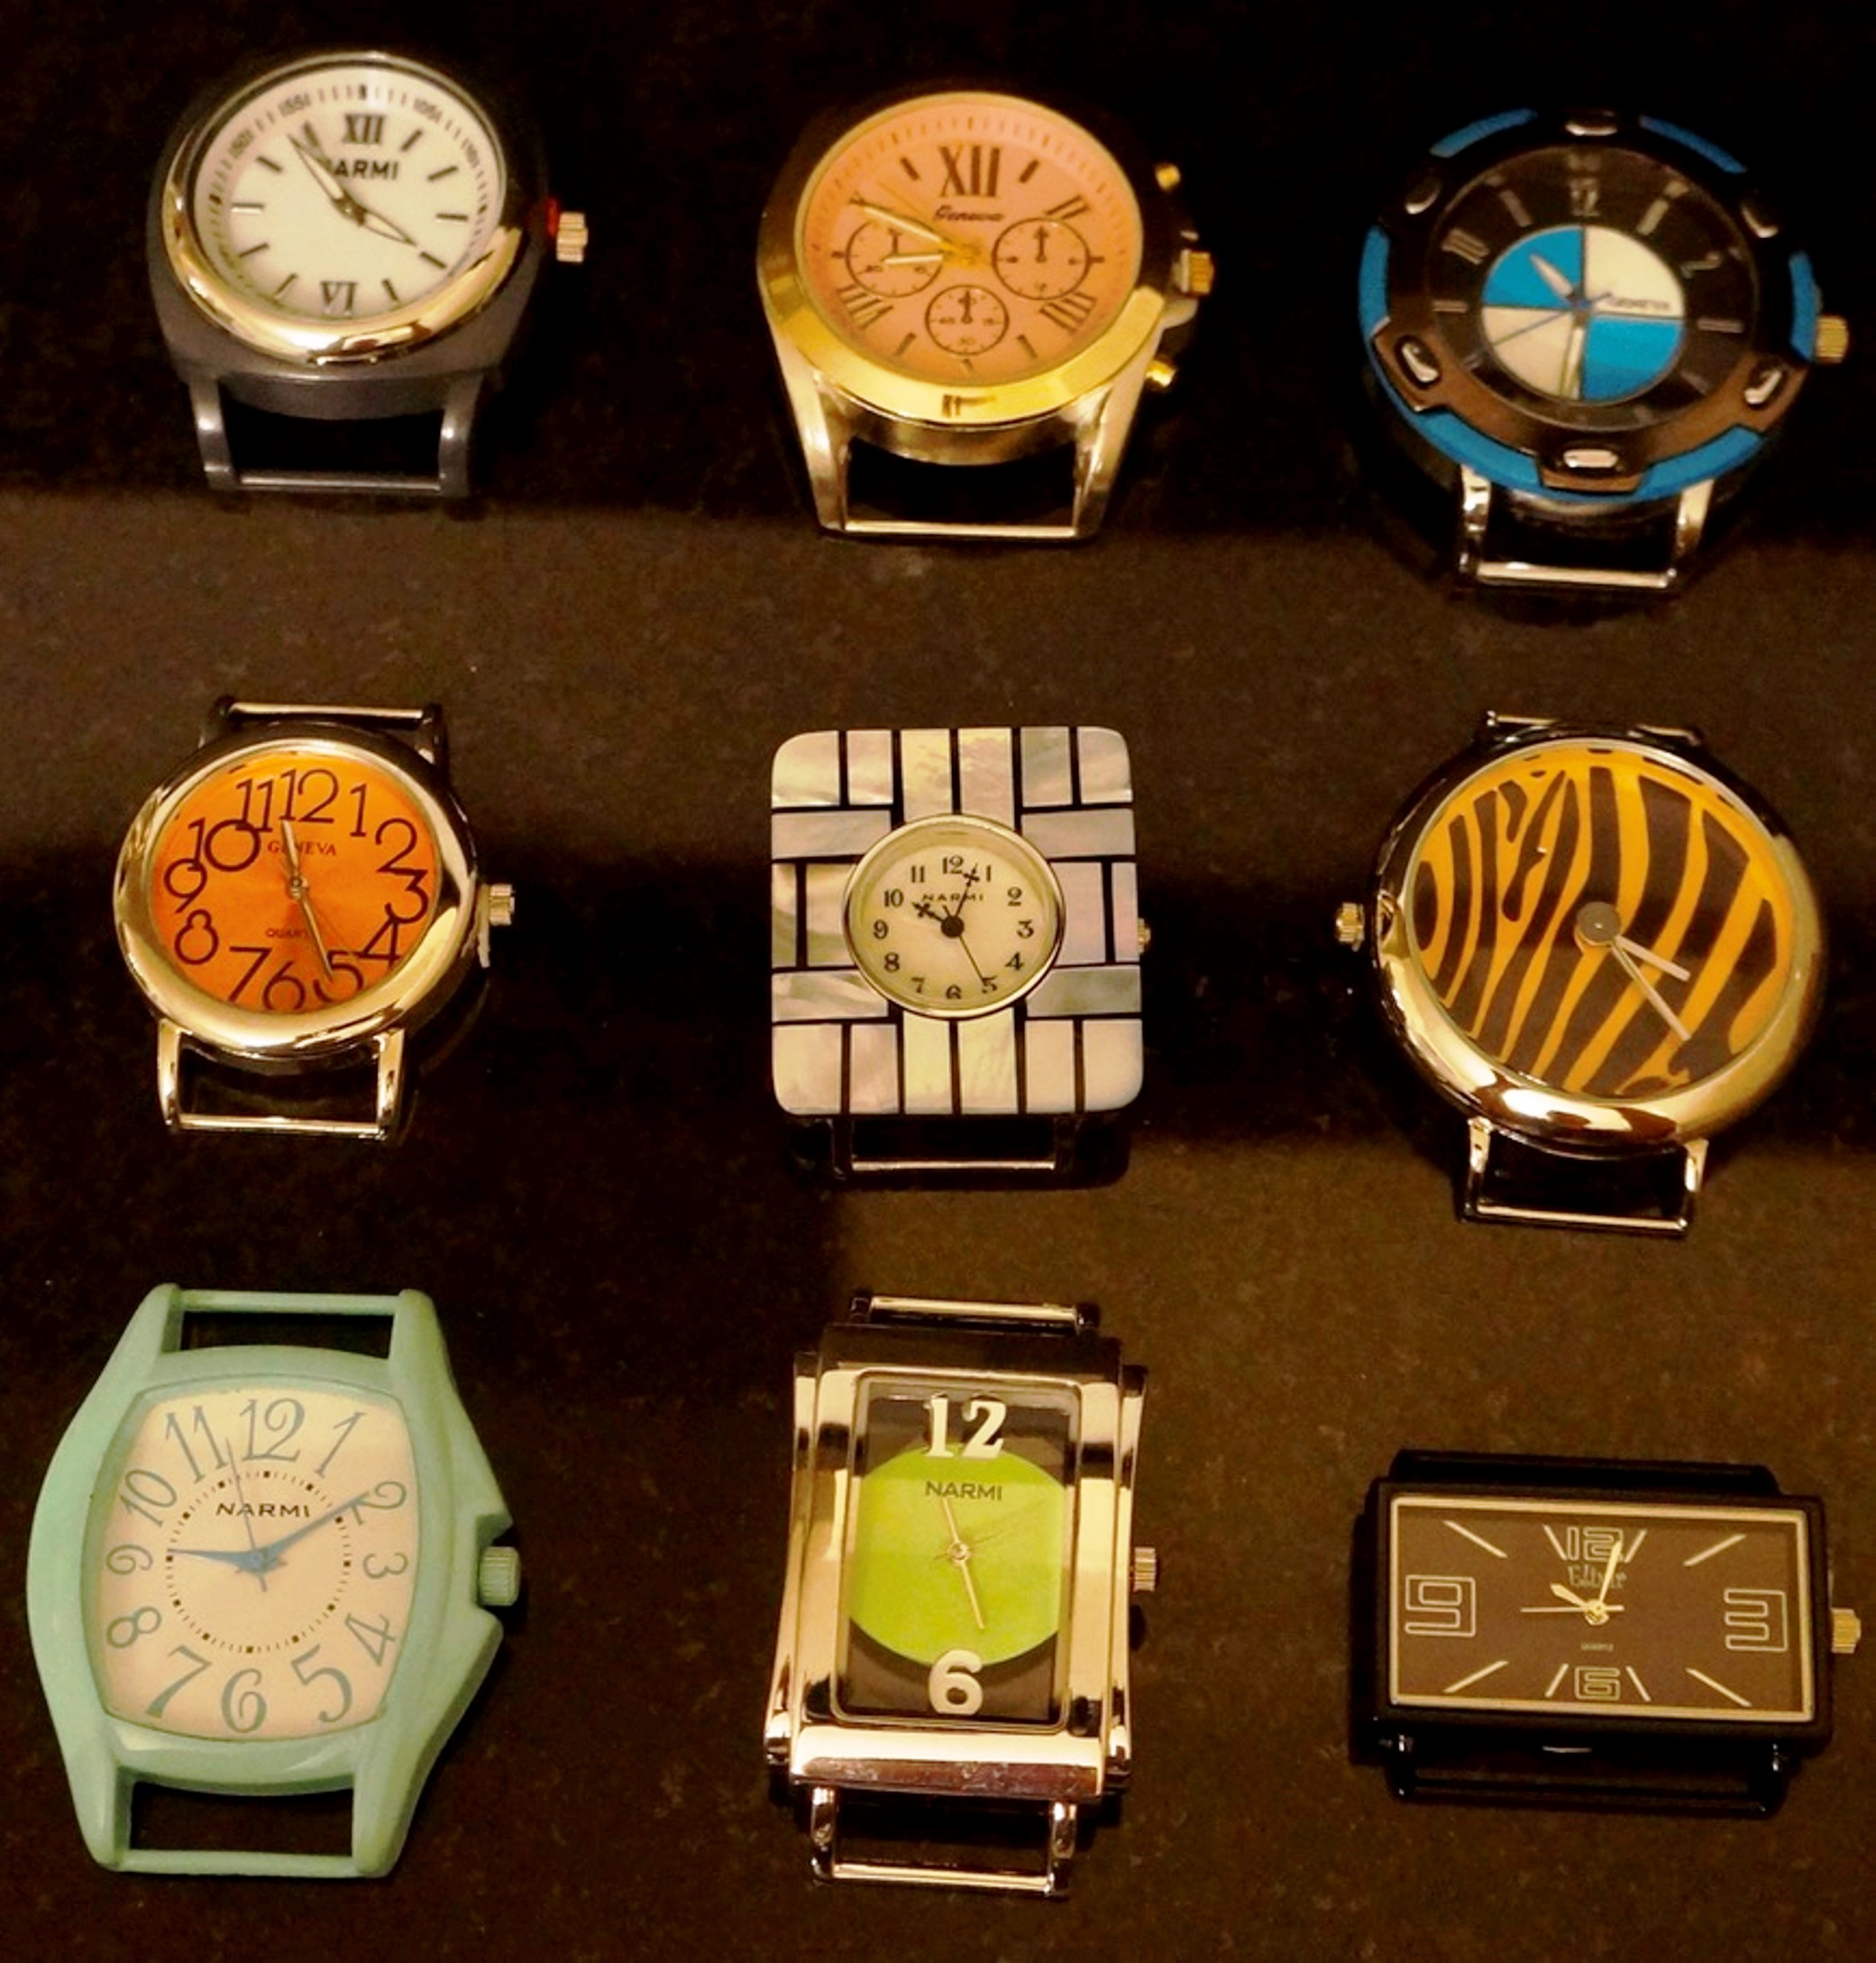 New 5 Ladies Solid Bar Watch Face for jewelry Making